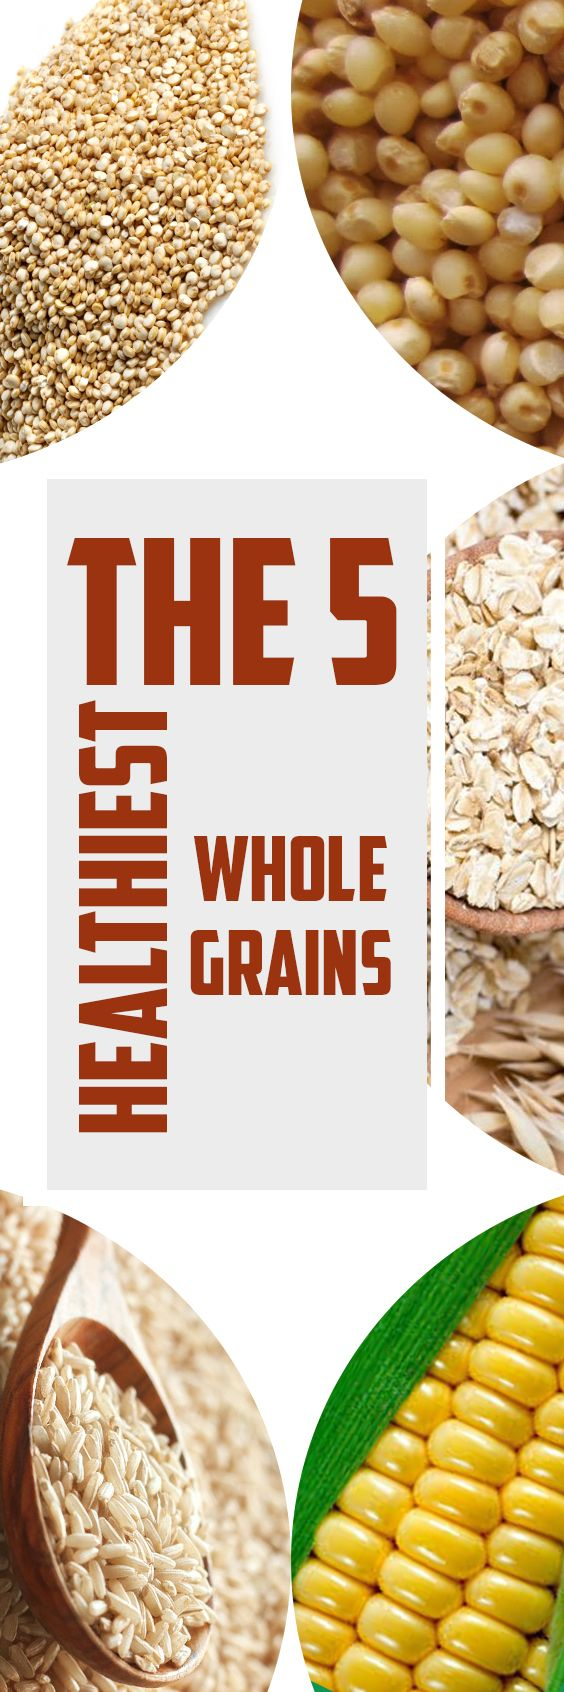 While the majority of whole grains come in all shapes, sizes, tastes and textures, their B vitamins, fiber, iron, plant-based protein and minerals content all deliver a hefty nutritional punch. According to studies, the complex carbohydrates present in whole grains digest more slowly than refined versions, keeping blood sugar levels and cravings regulated for sustainedRead More